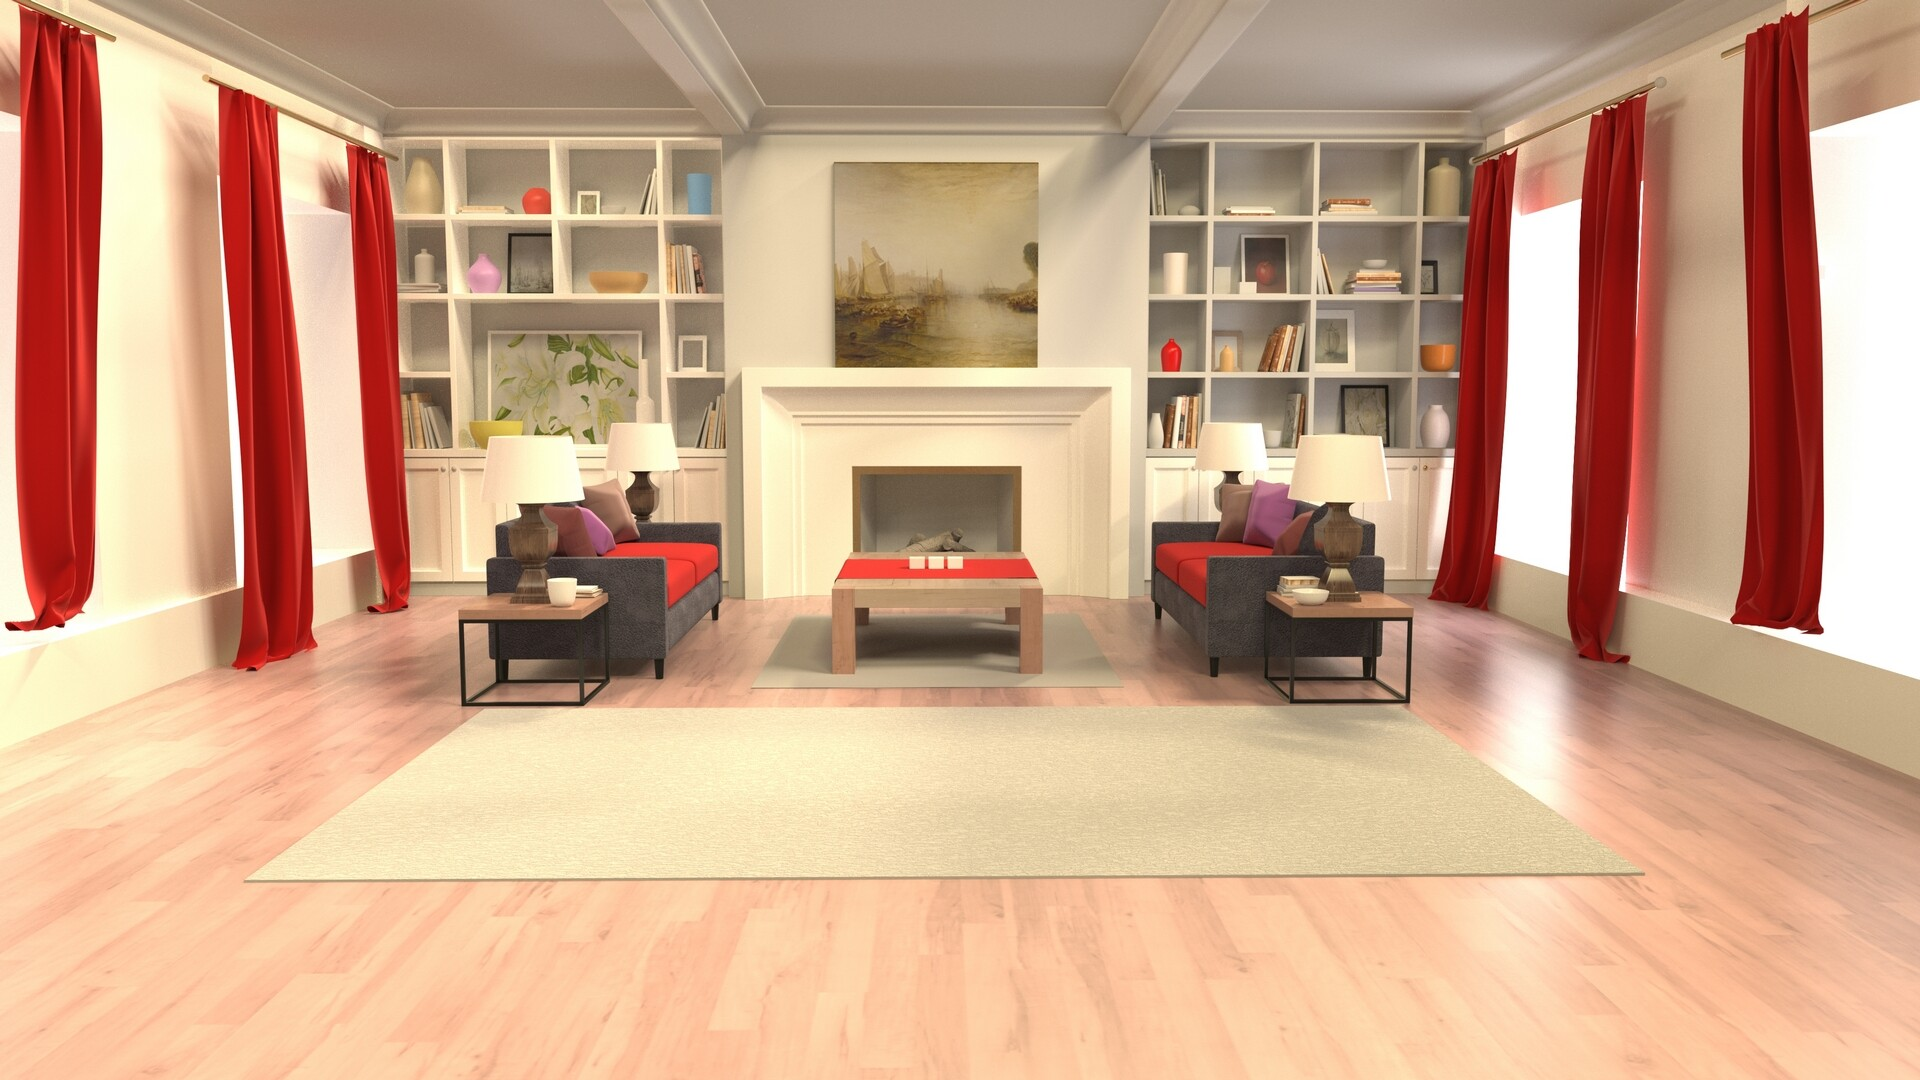 Virtual TV Studio Background - Architectural Rendering/Visualization.